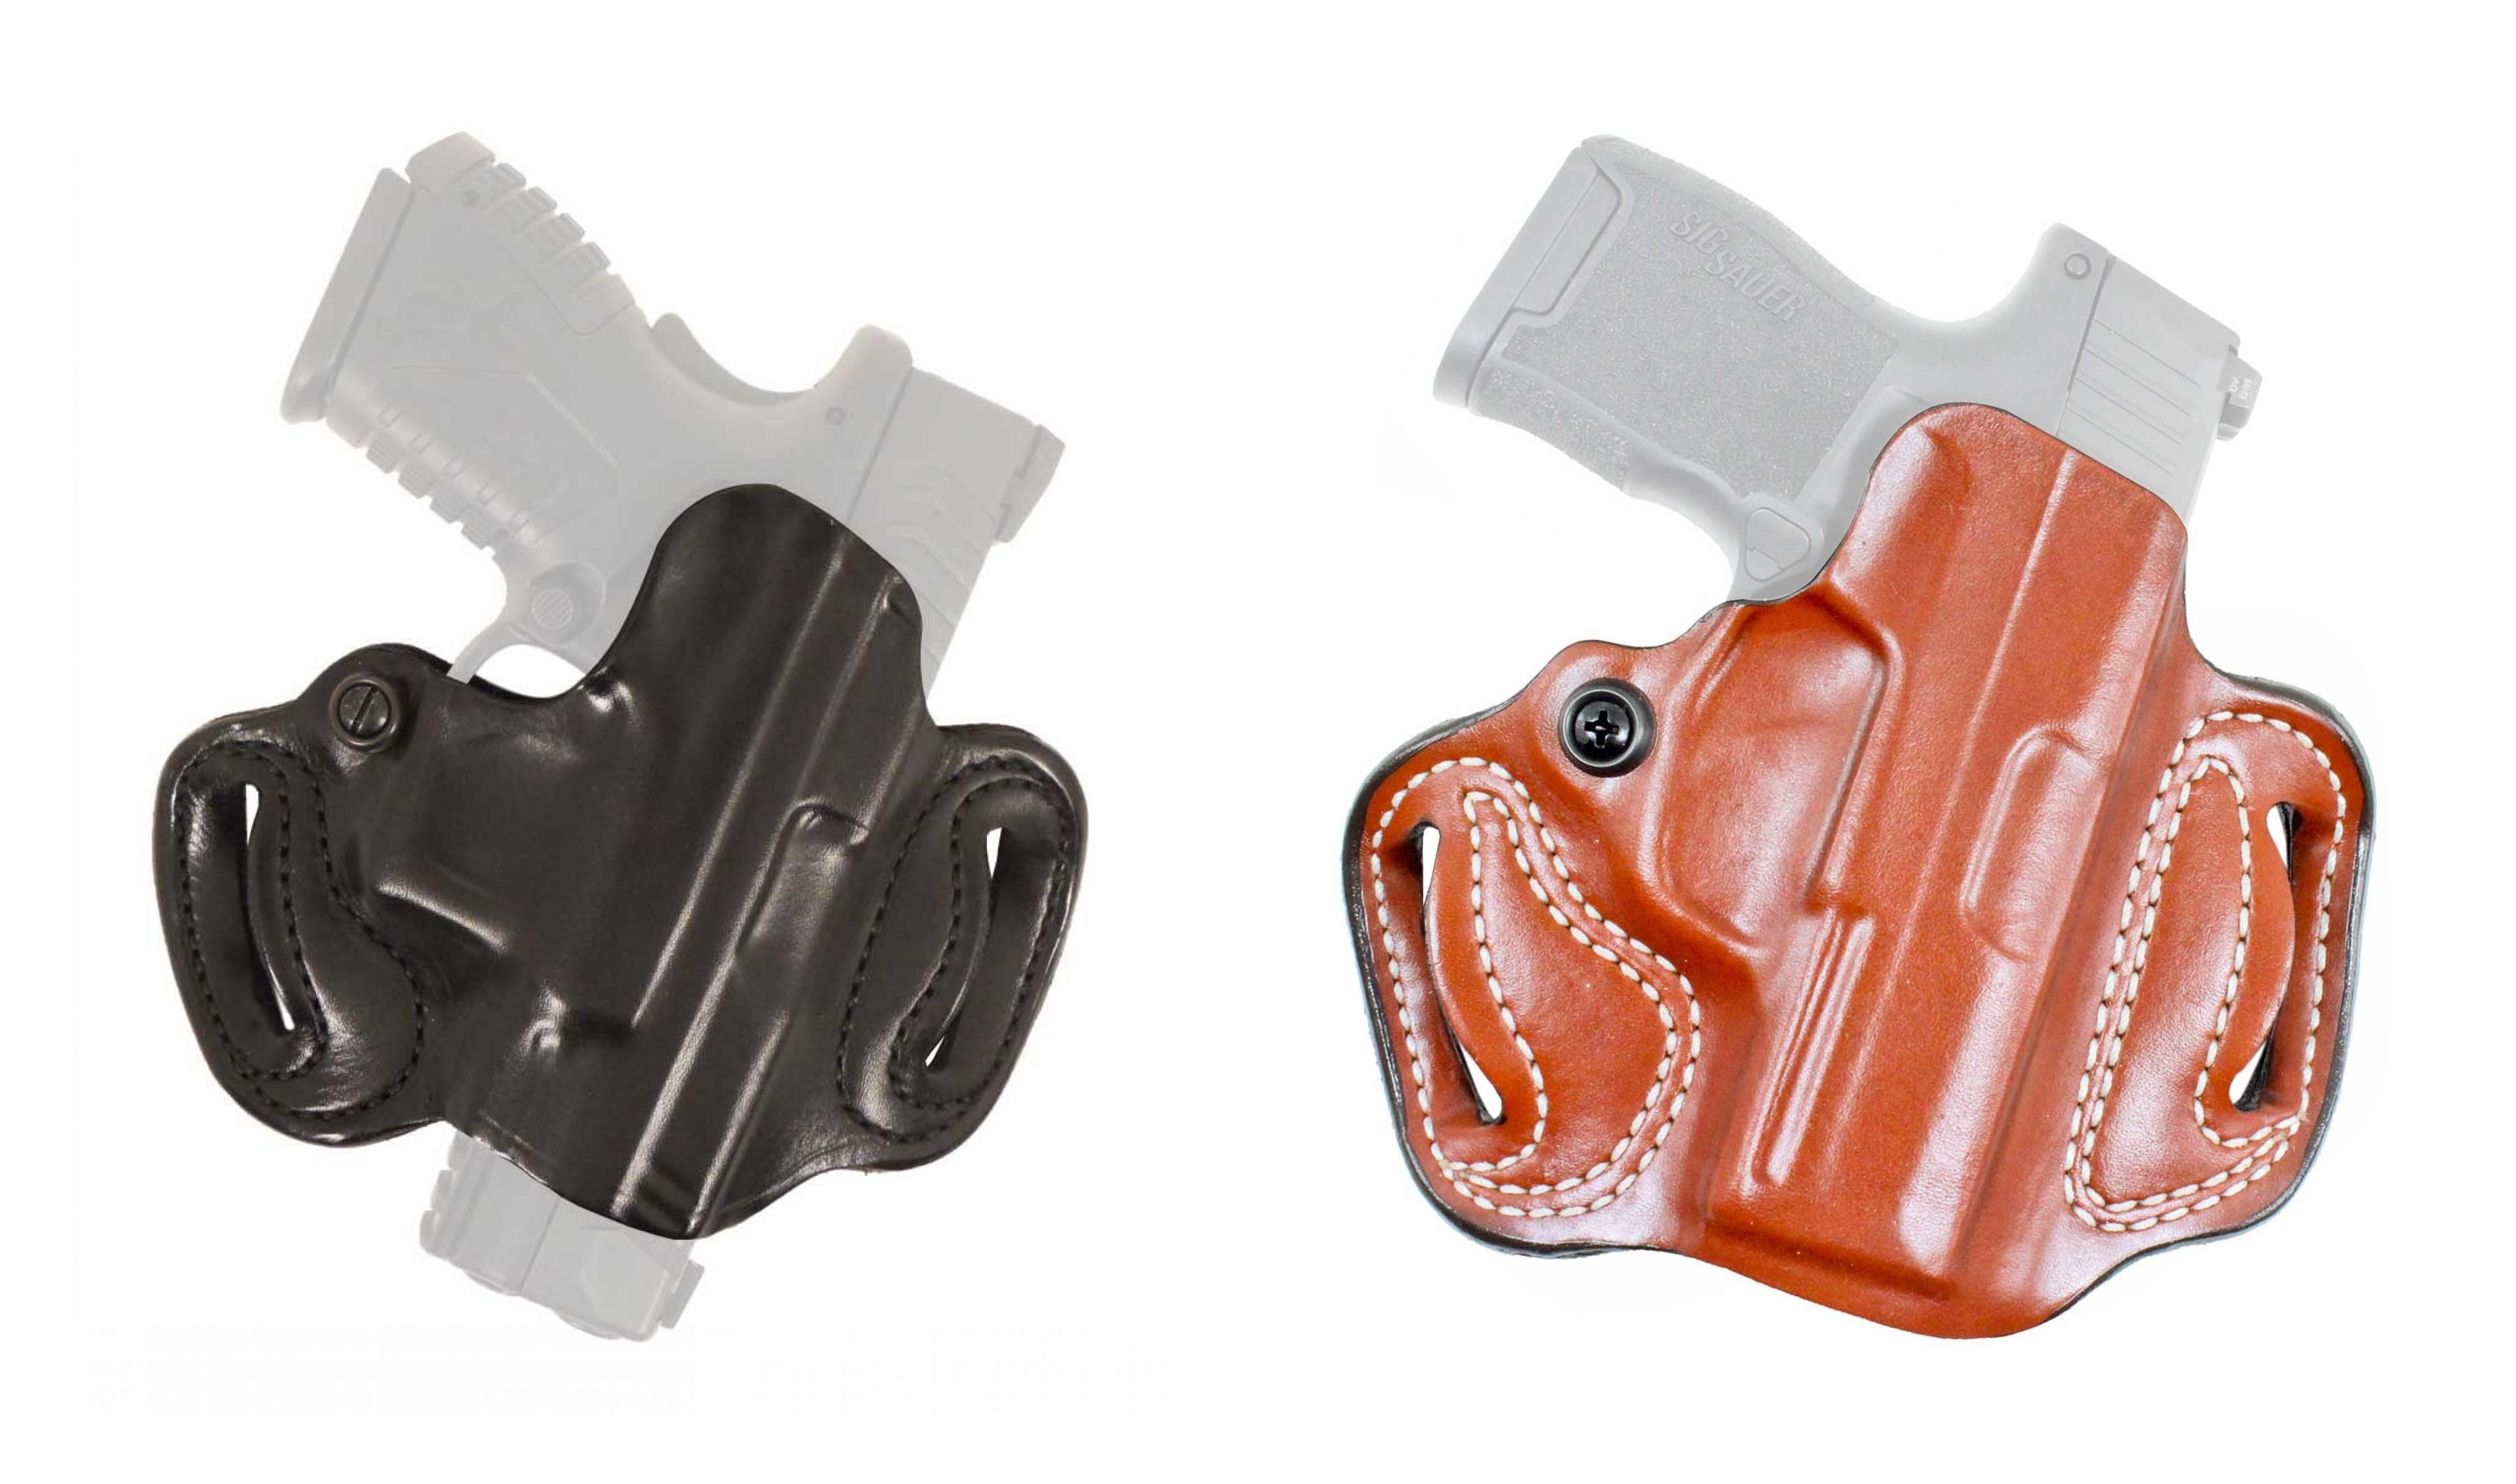 DeSantis Mini Slide, Belt Holster